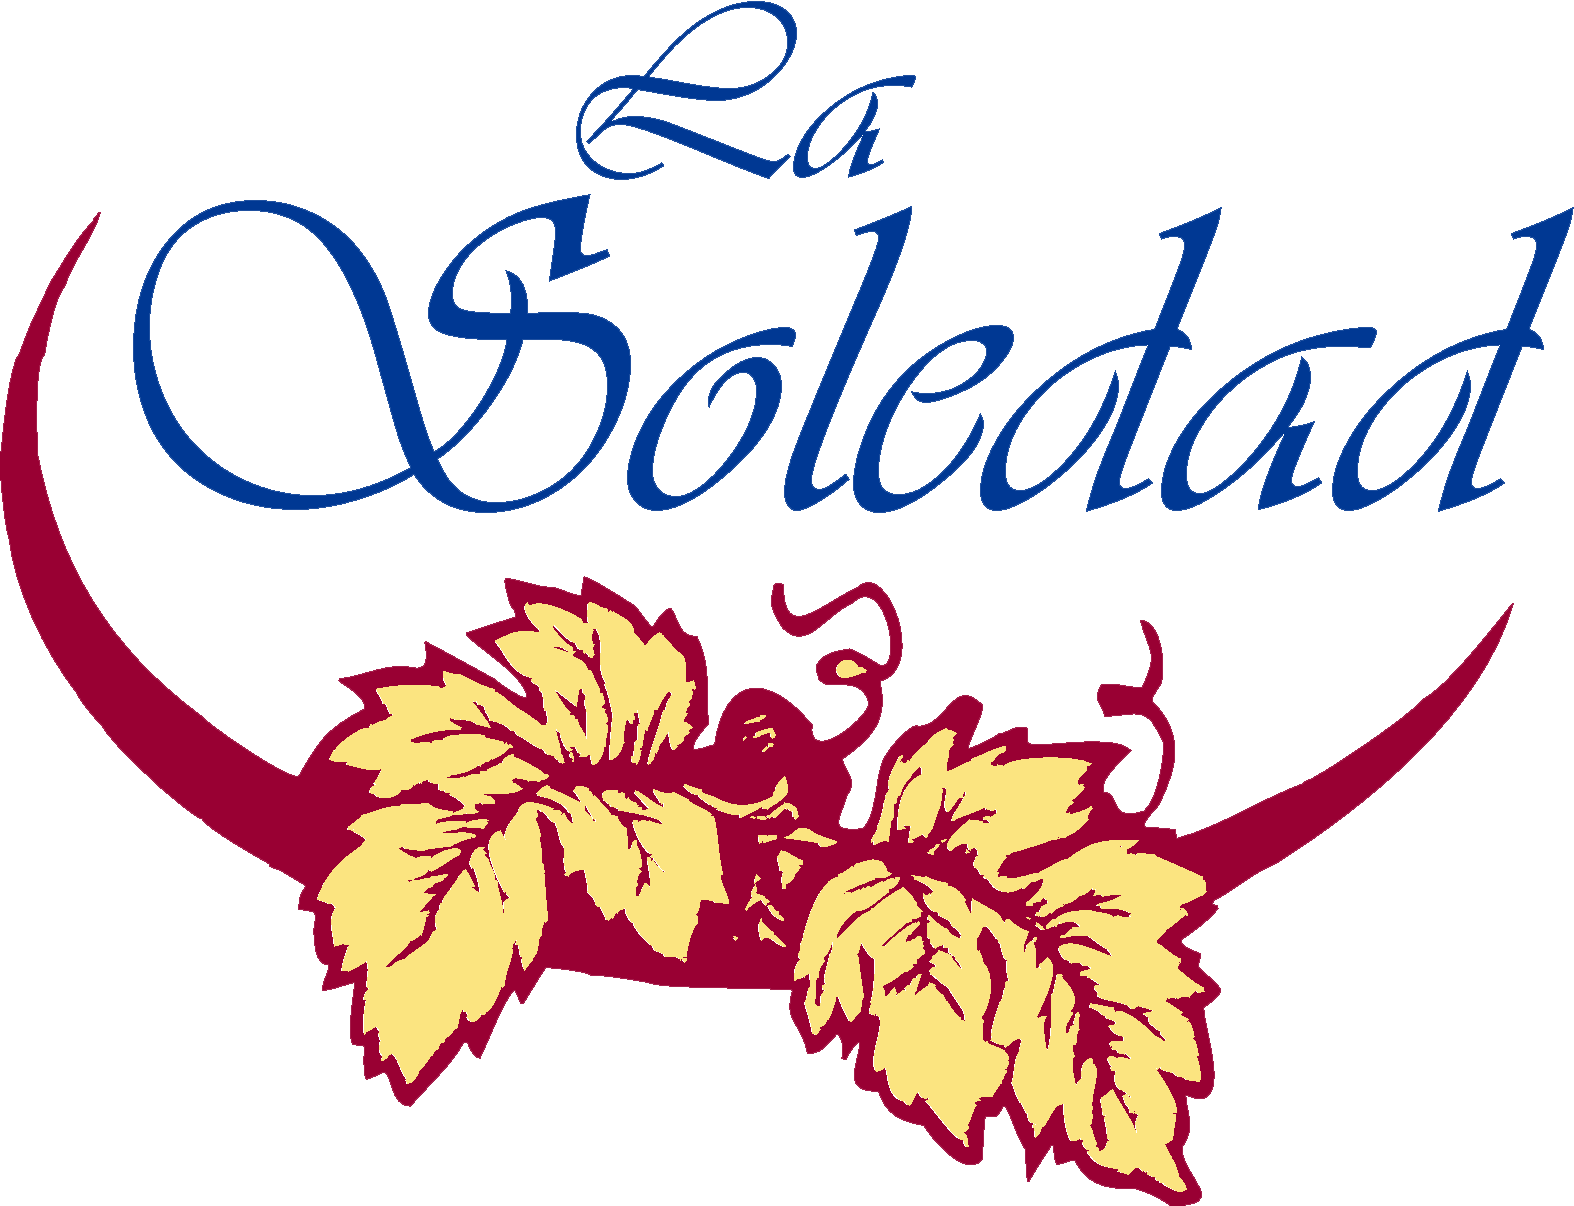 Wine Cellar of Spain La Soledad